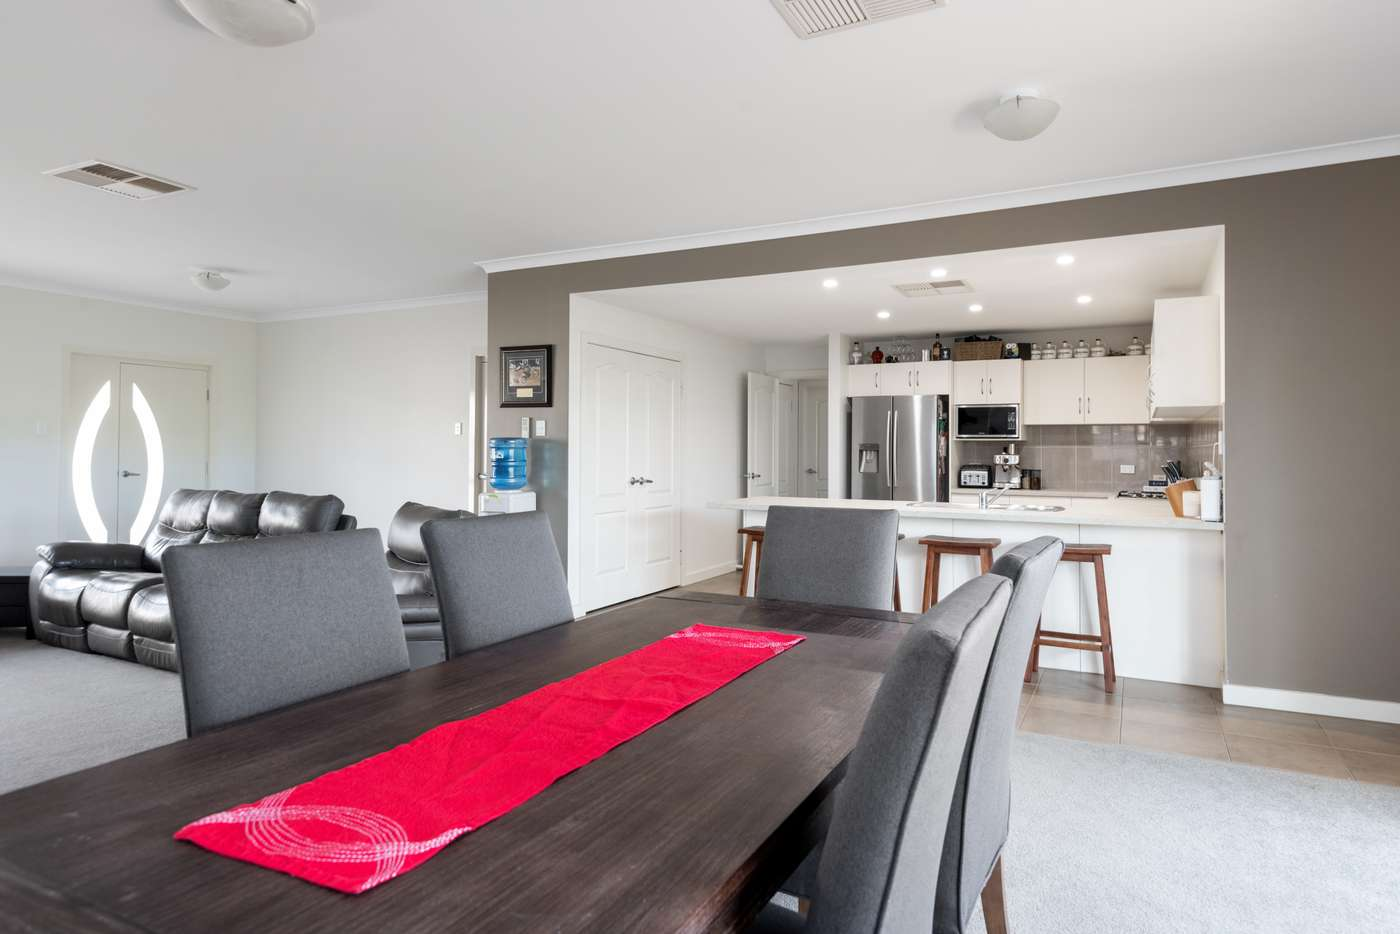 Sixth view of Homely house listing, 8A Frank Street, South Kalgoorlie WA 6430